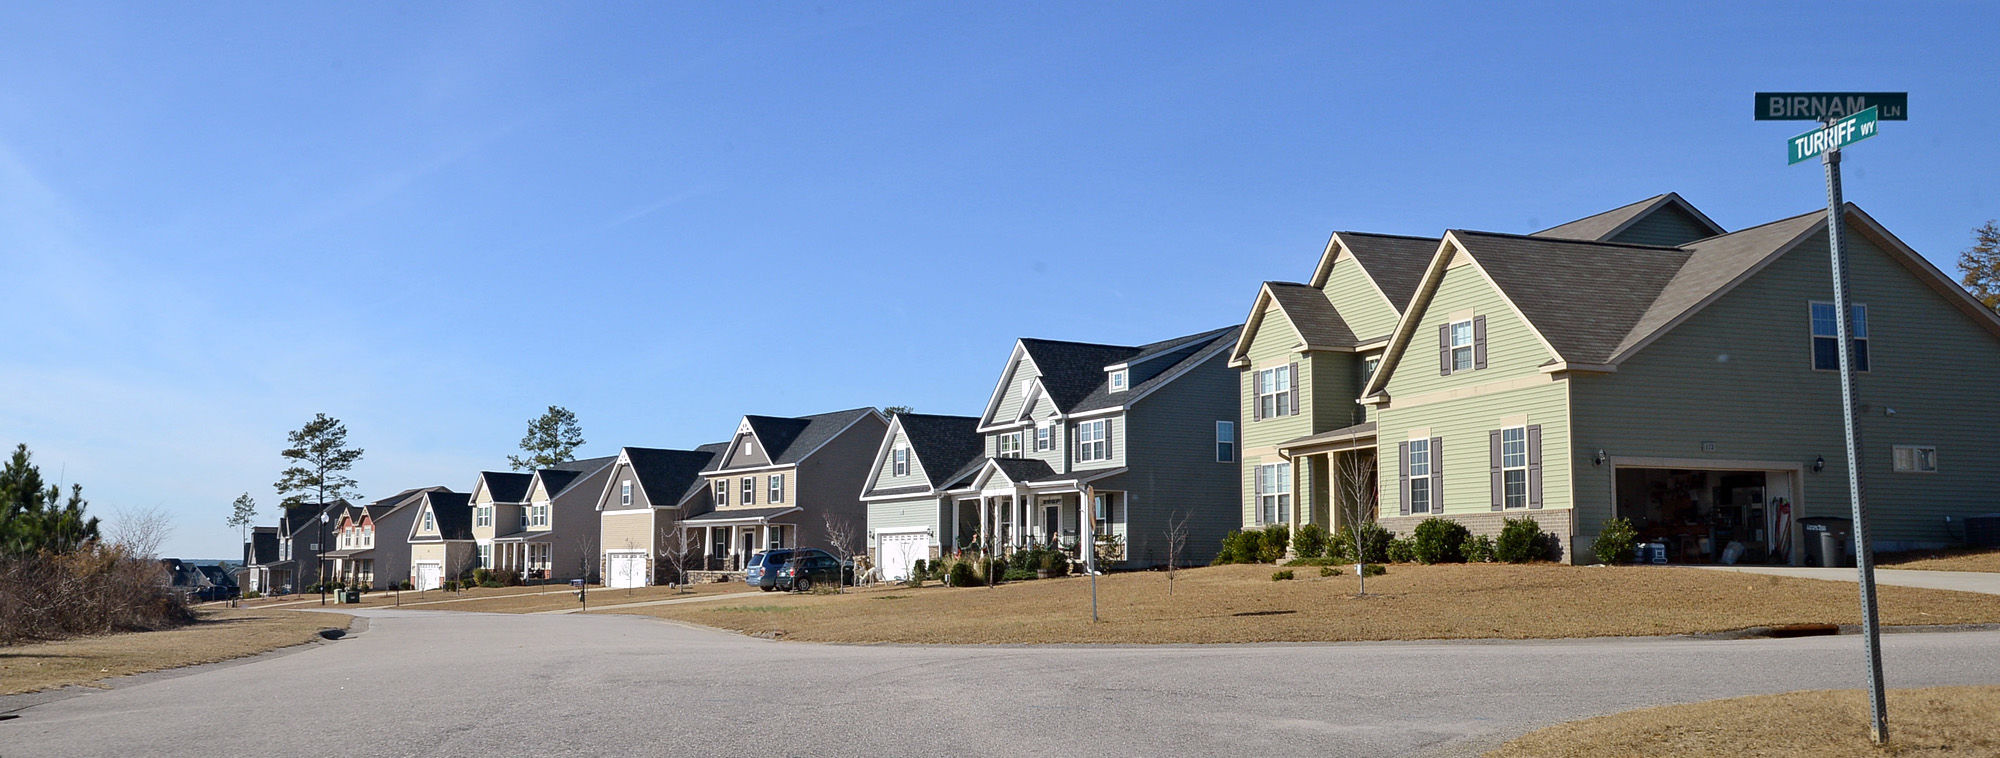 Booming Home Sales Driving Local Economy